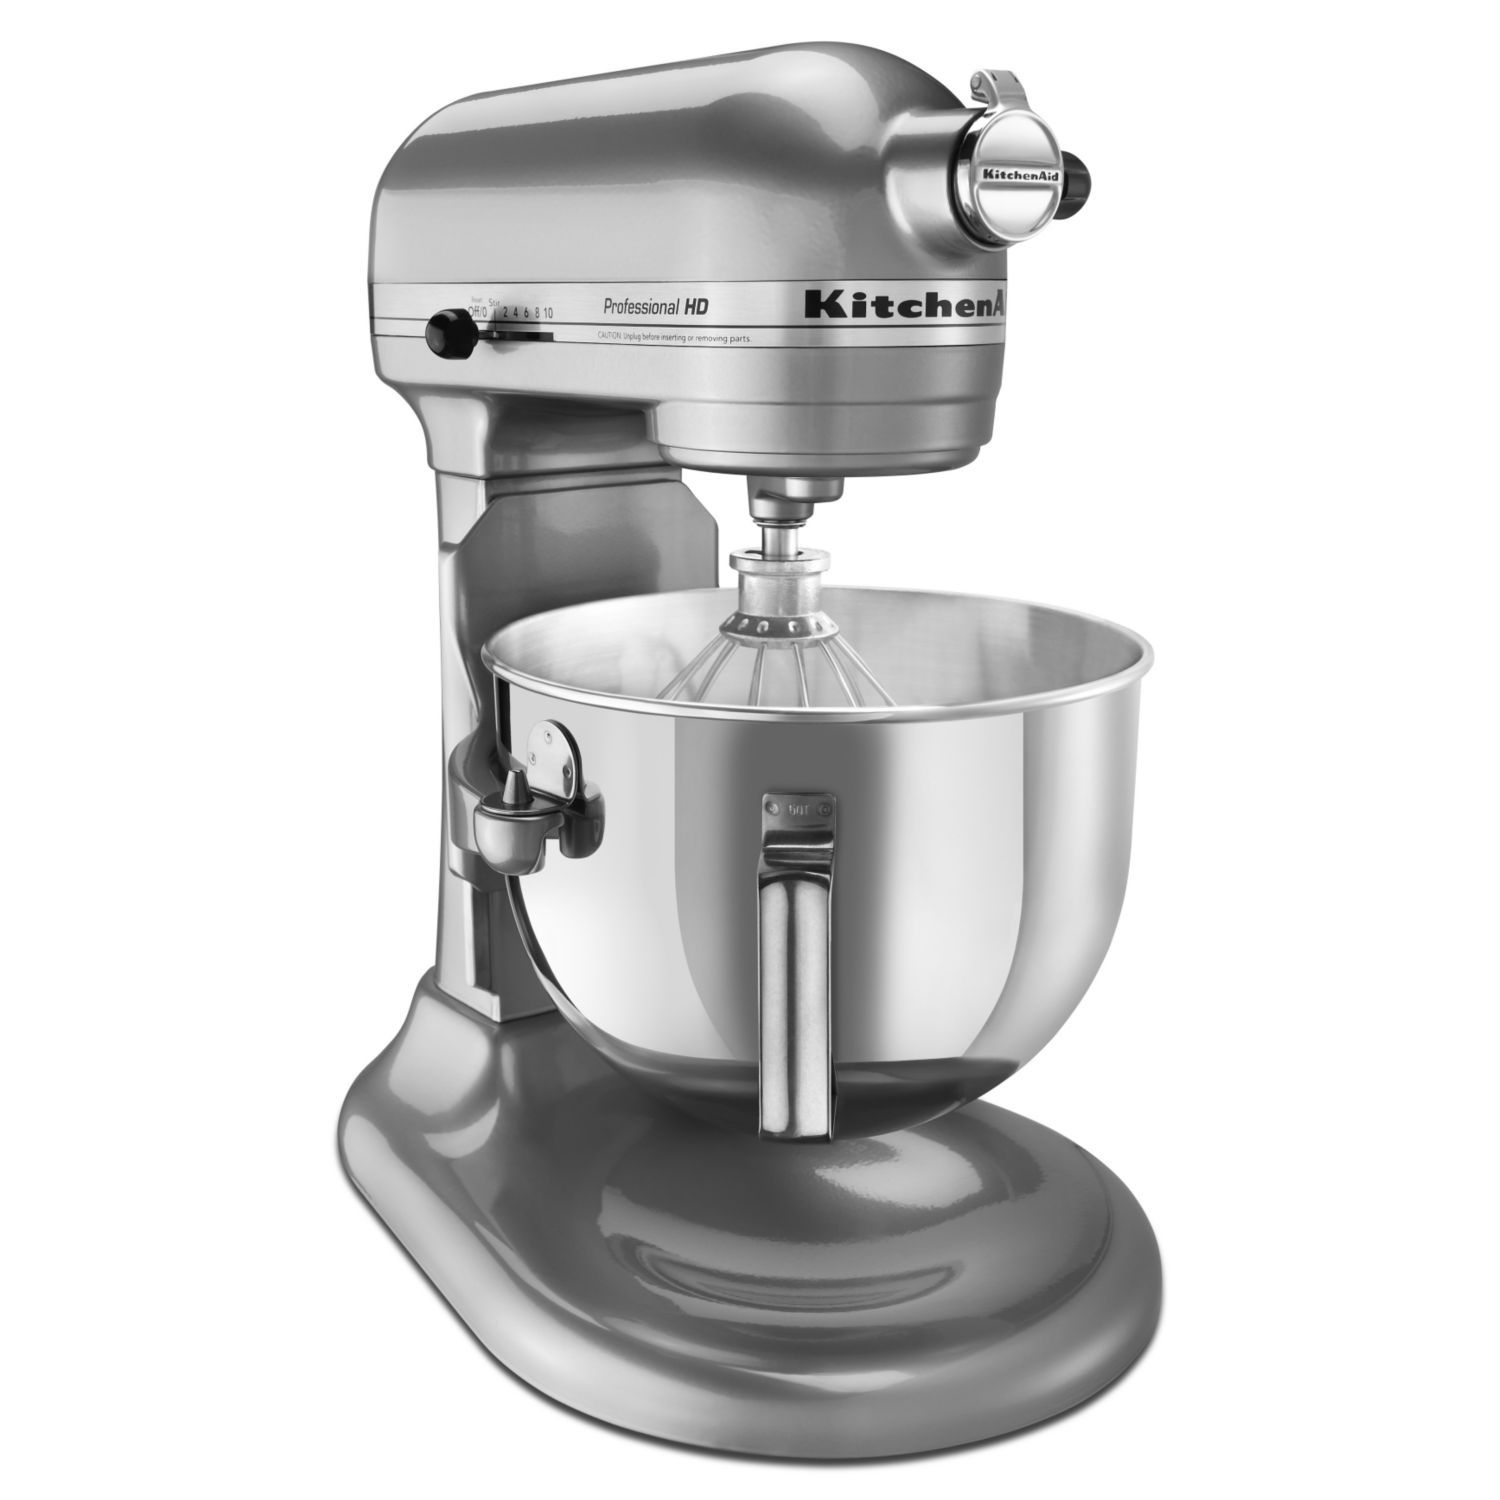 Swell Kitchenaid Professional Hd Stand Mixer 50 Mail In Rebate Home Interior And Landscaping Analalmasignezvosmurscom